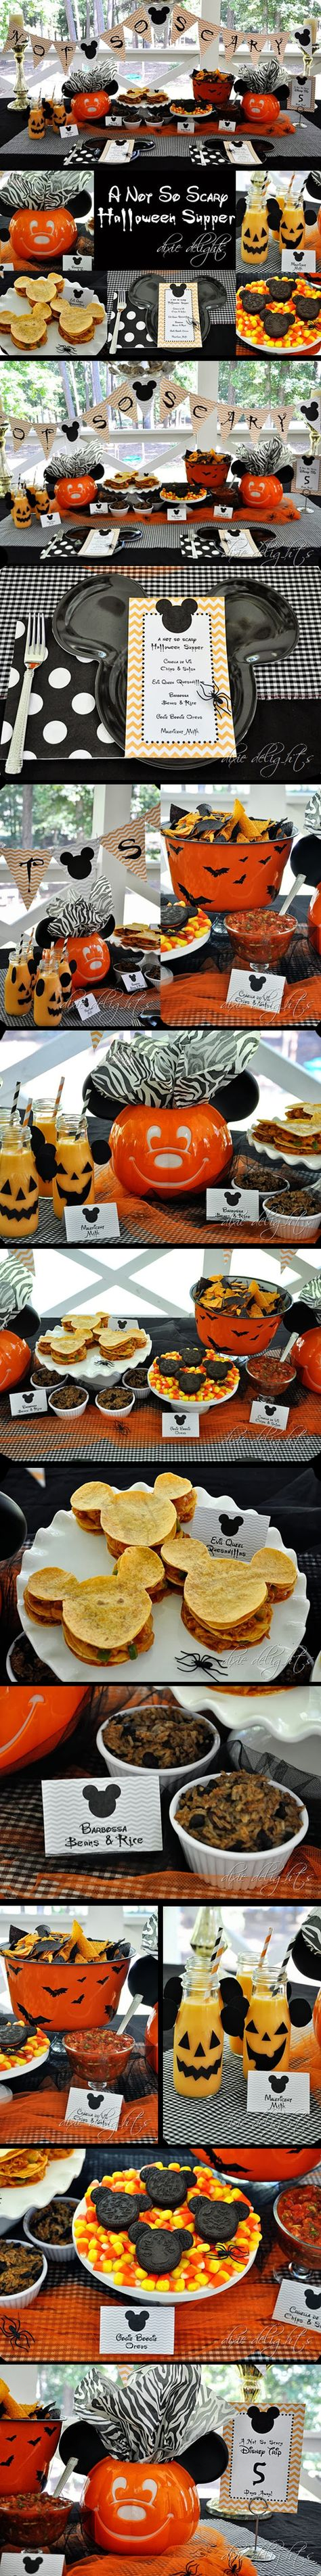 Some great ideas for a Mickey's Not-So-Scare Halloween Supper Buffet.  (I have seen the Mickey Mouse shaped plates at Target.)